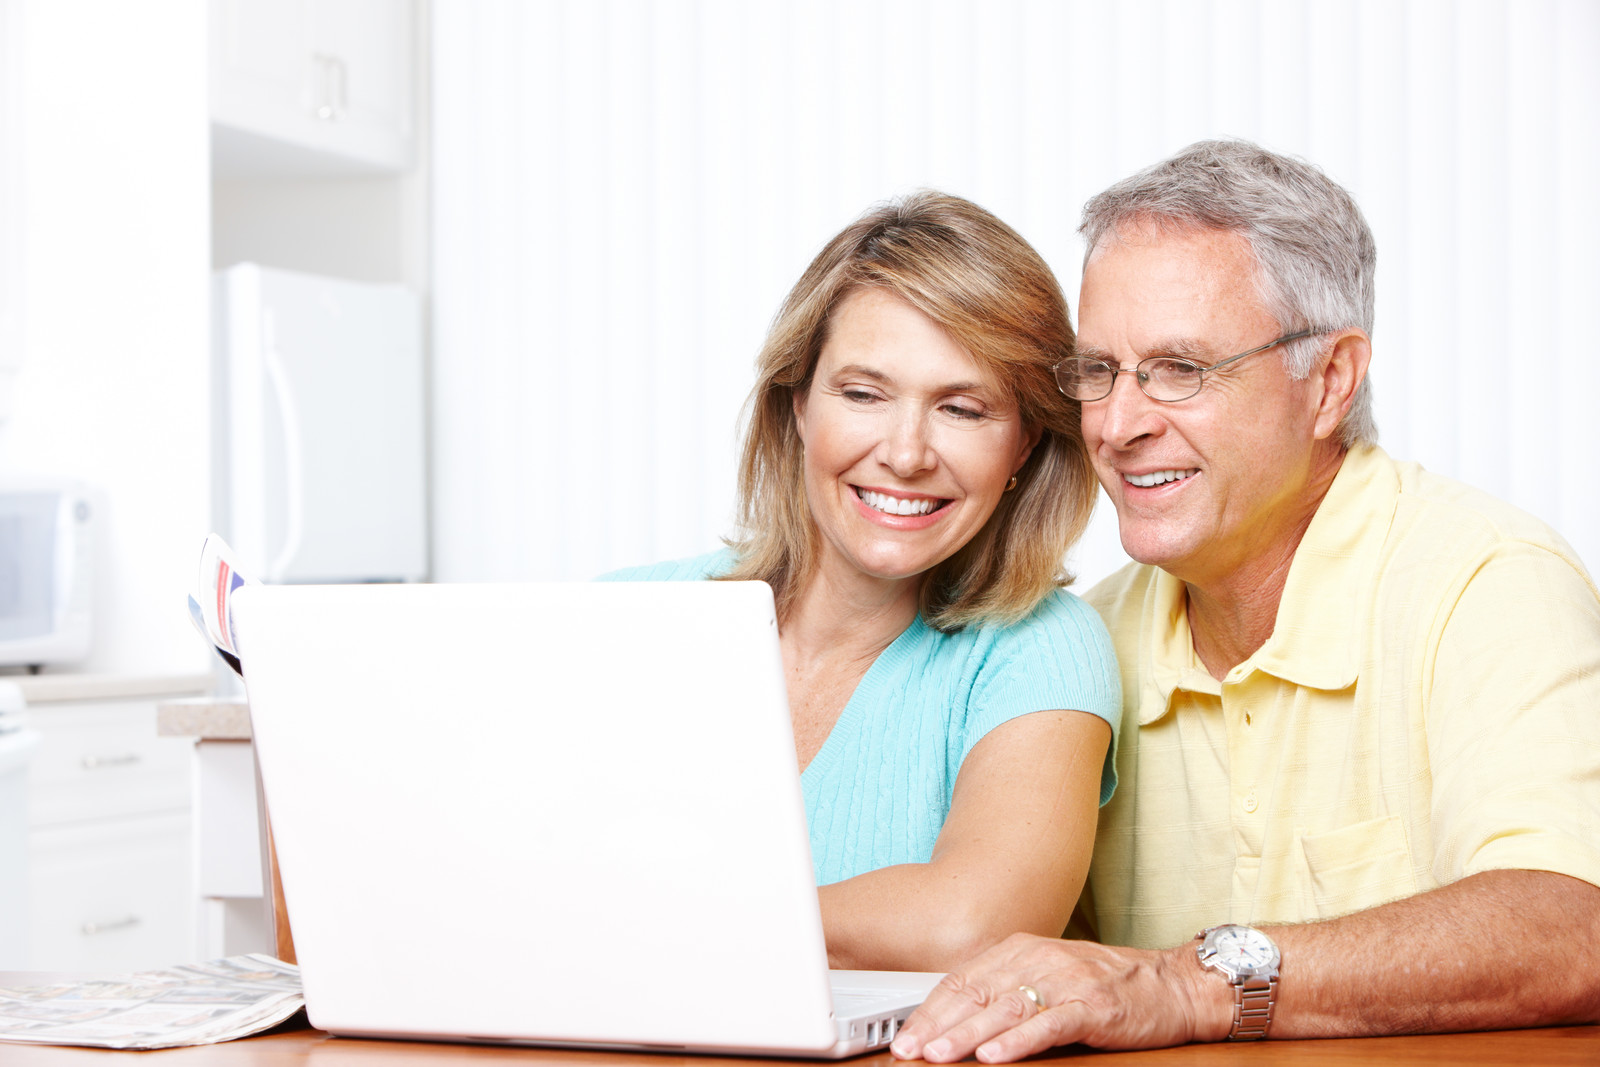 Middle aged couple smiling while looking at computer